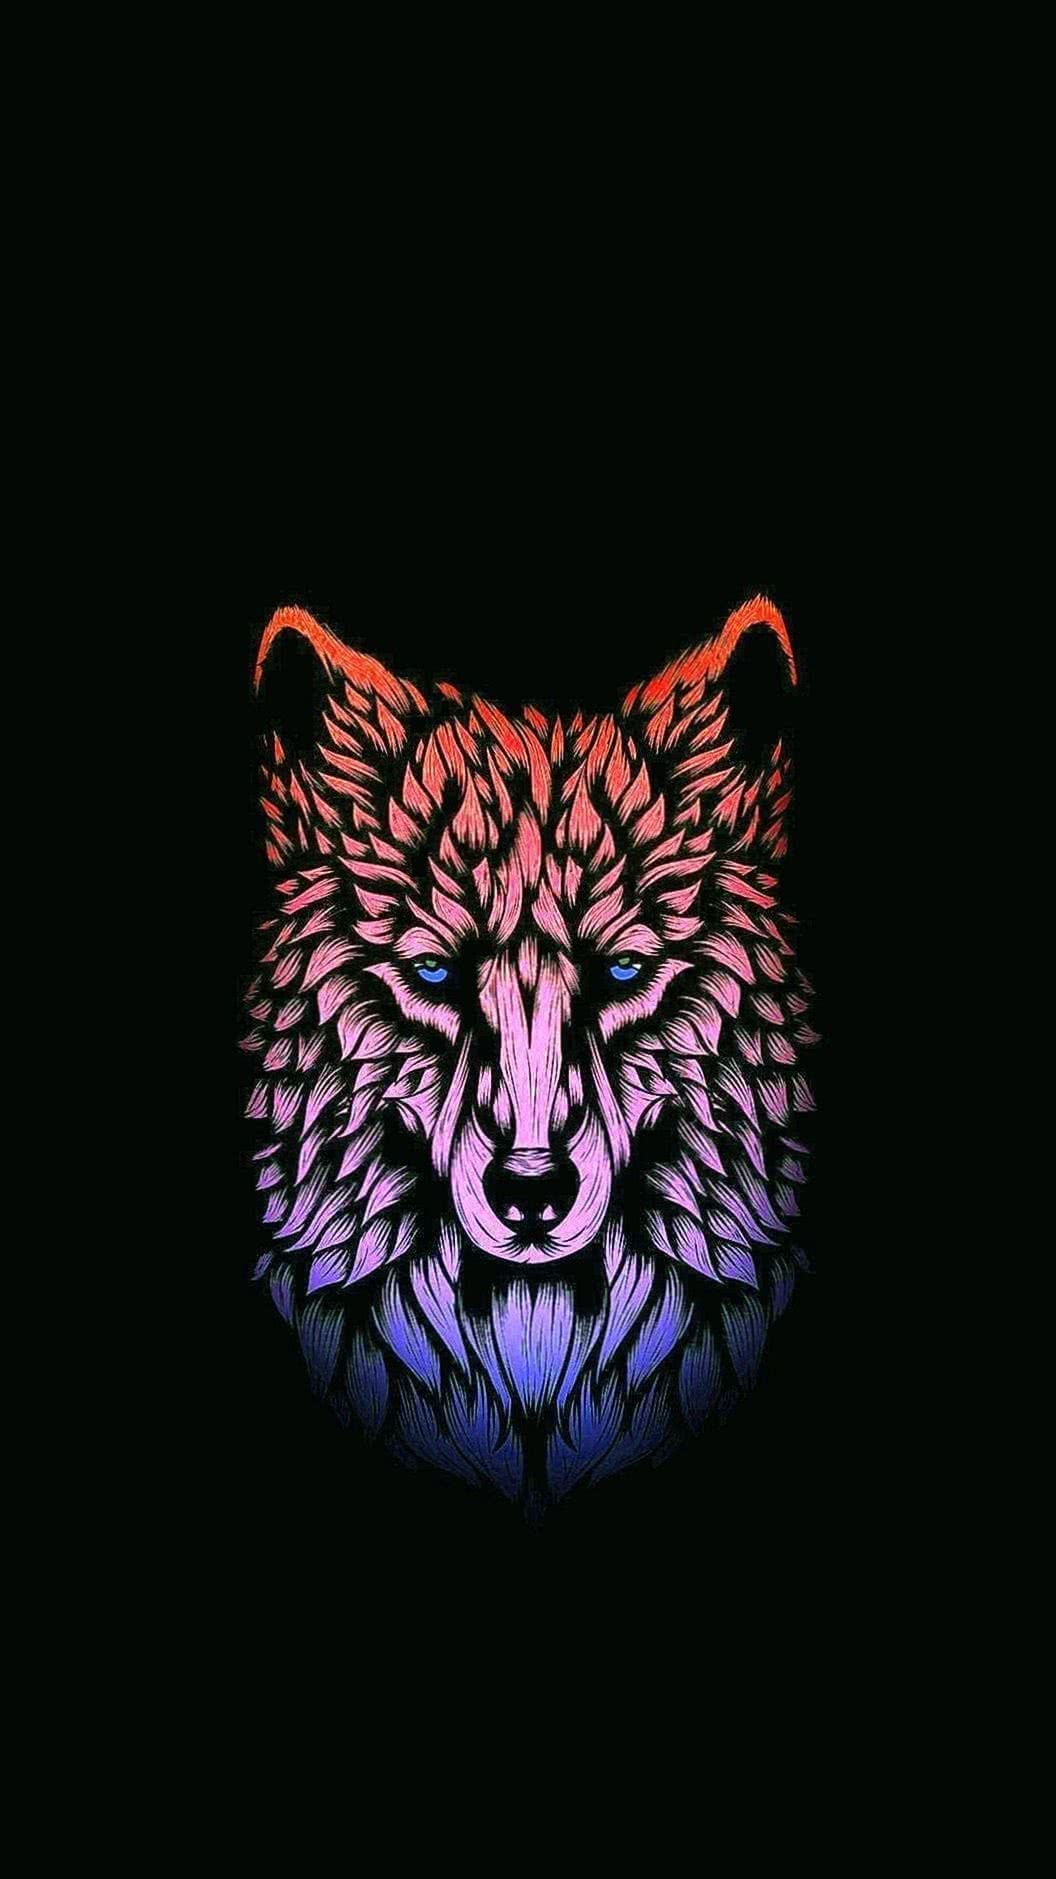 Amoled Wallpapers Wolf